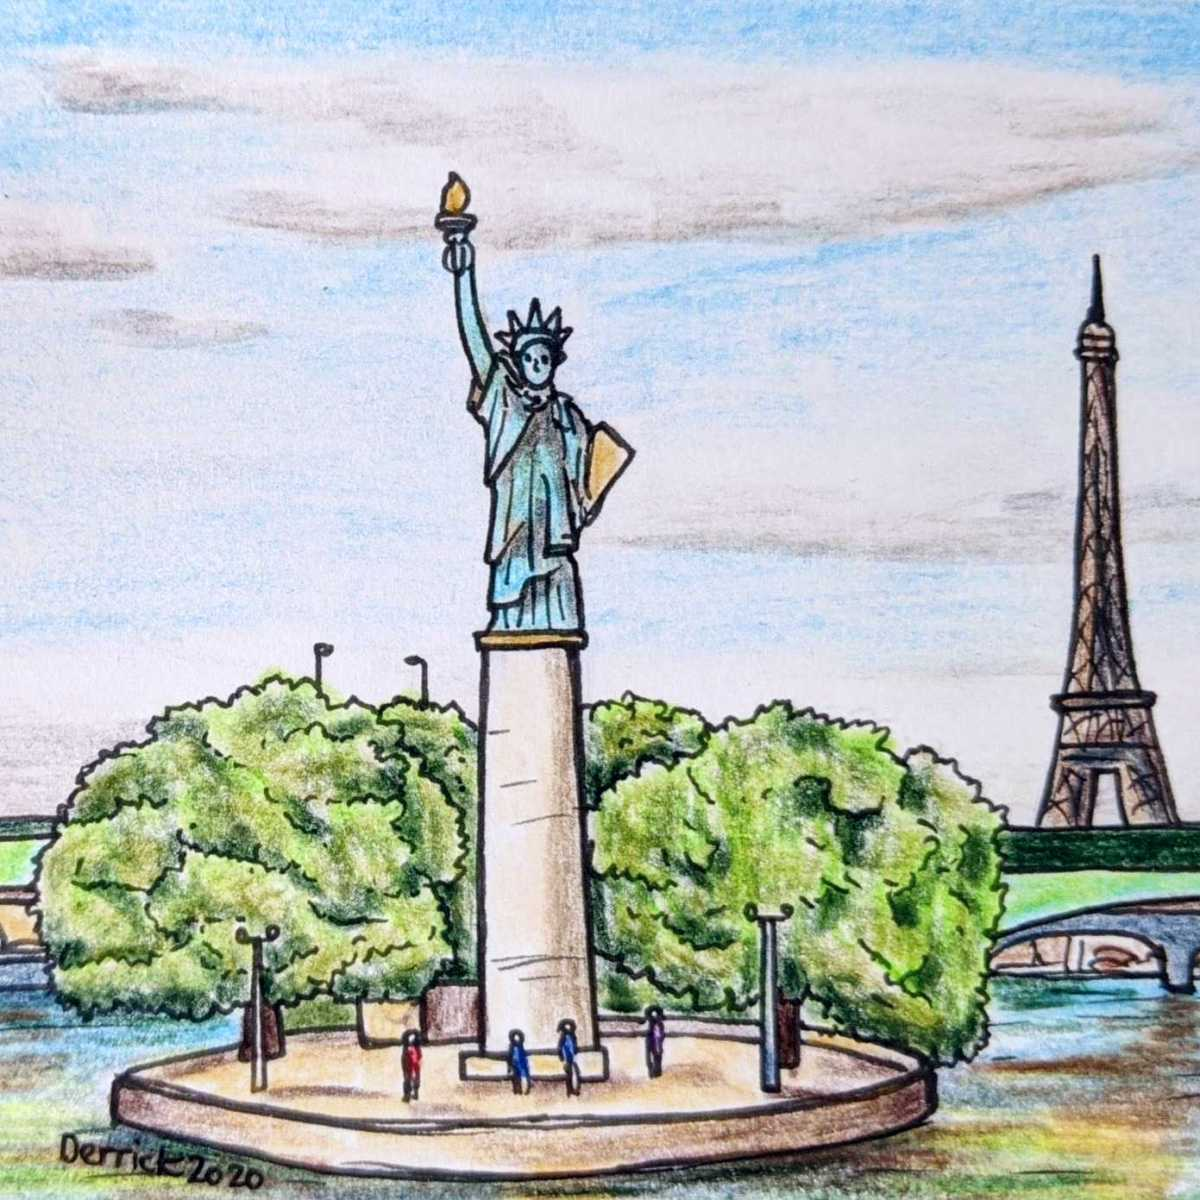 drawing of a replica of the statue on liberty in paris on the ile des cygnes